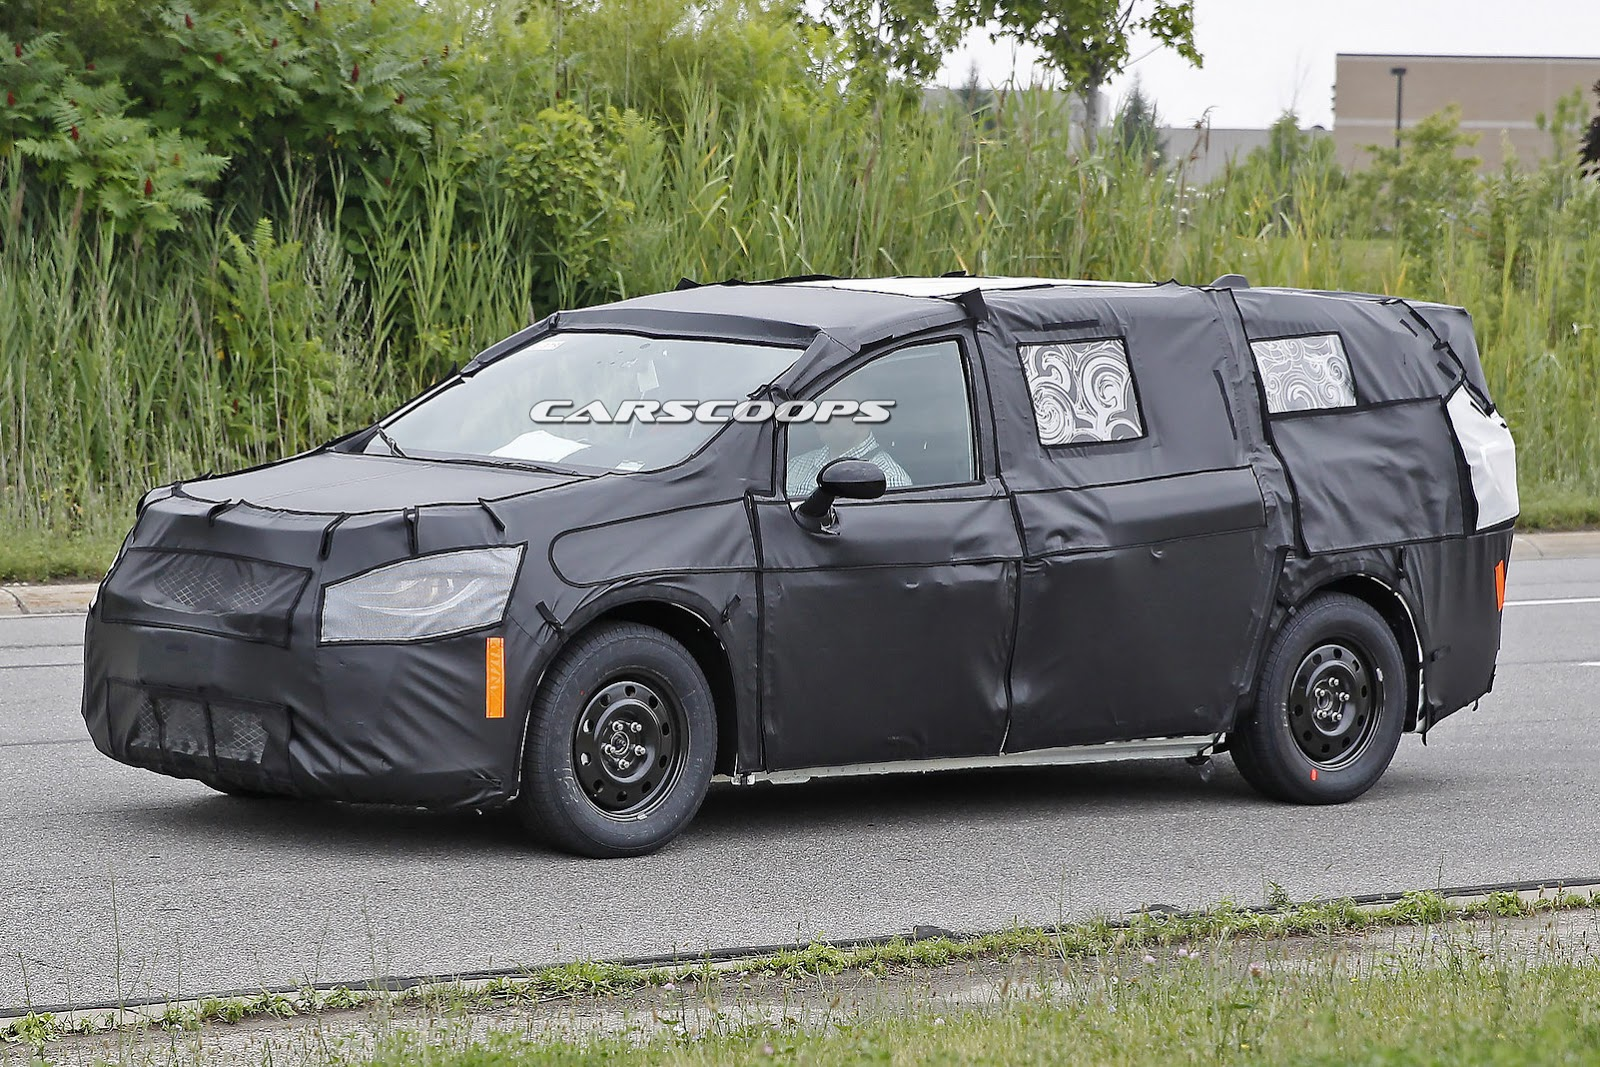 2017 Chrysler Town Country Dodge Grand Caravan Spied For The First Time